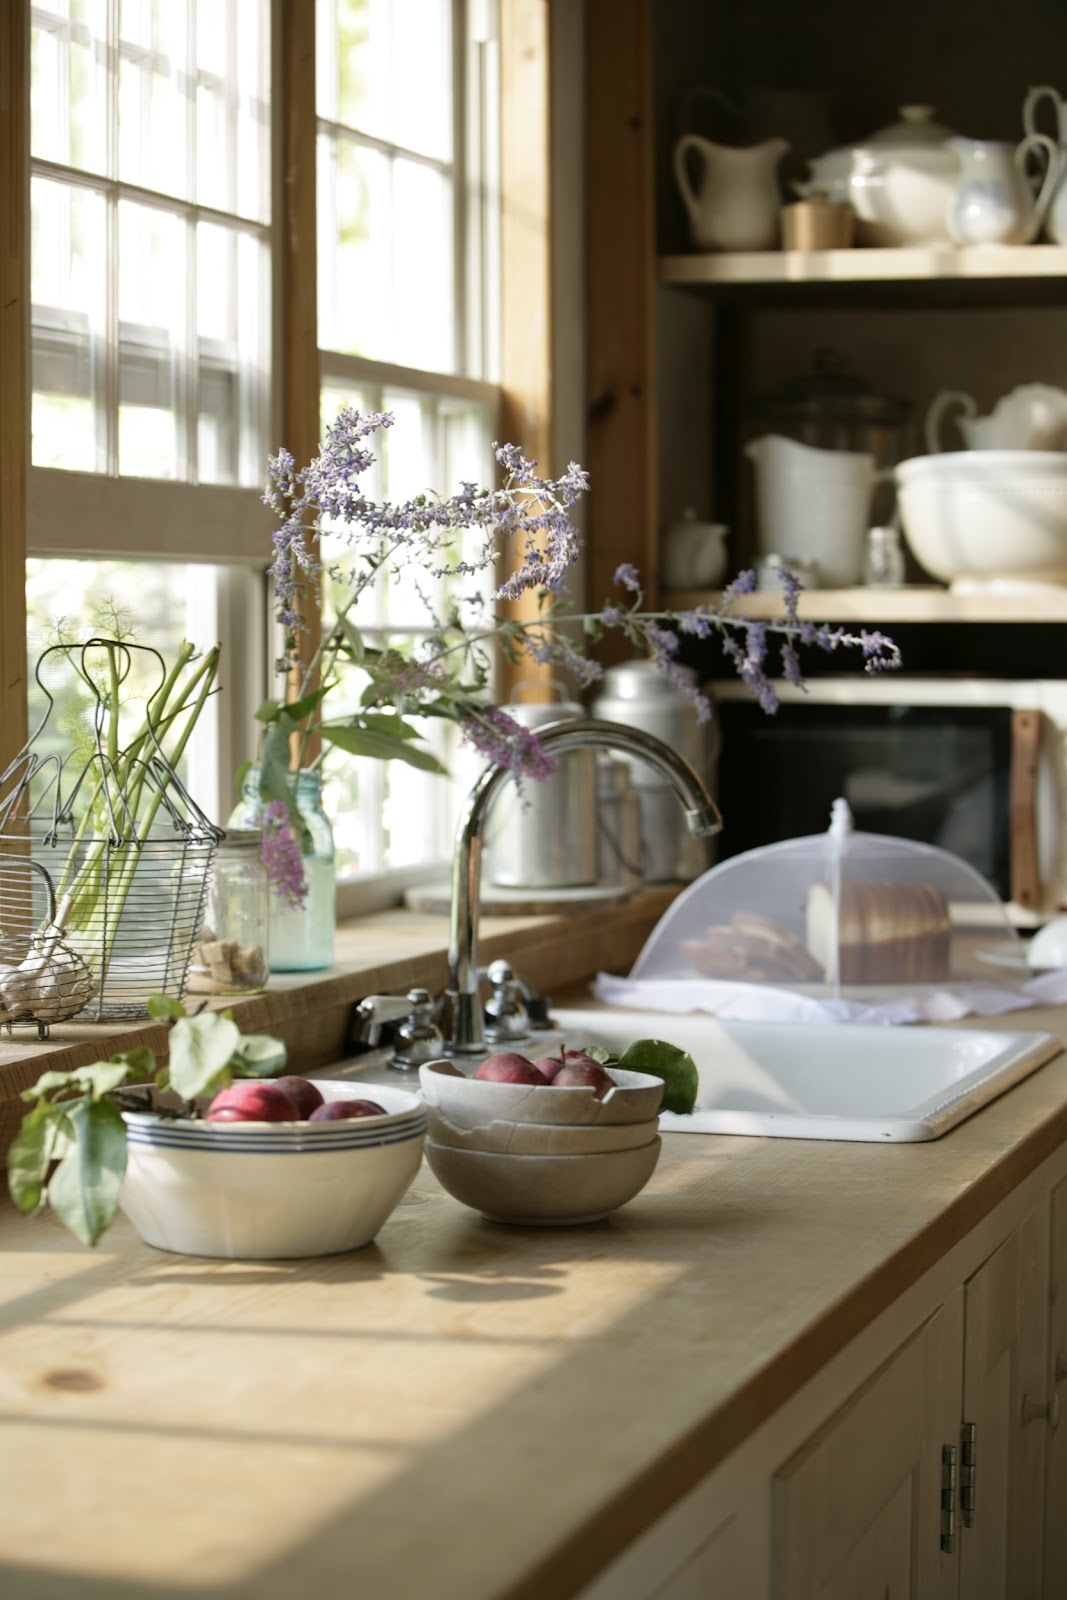 Kitchen Styling Karin Lidbeck A Special Treat The Art Of Kitchen Styling By